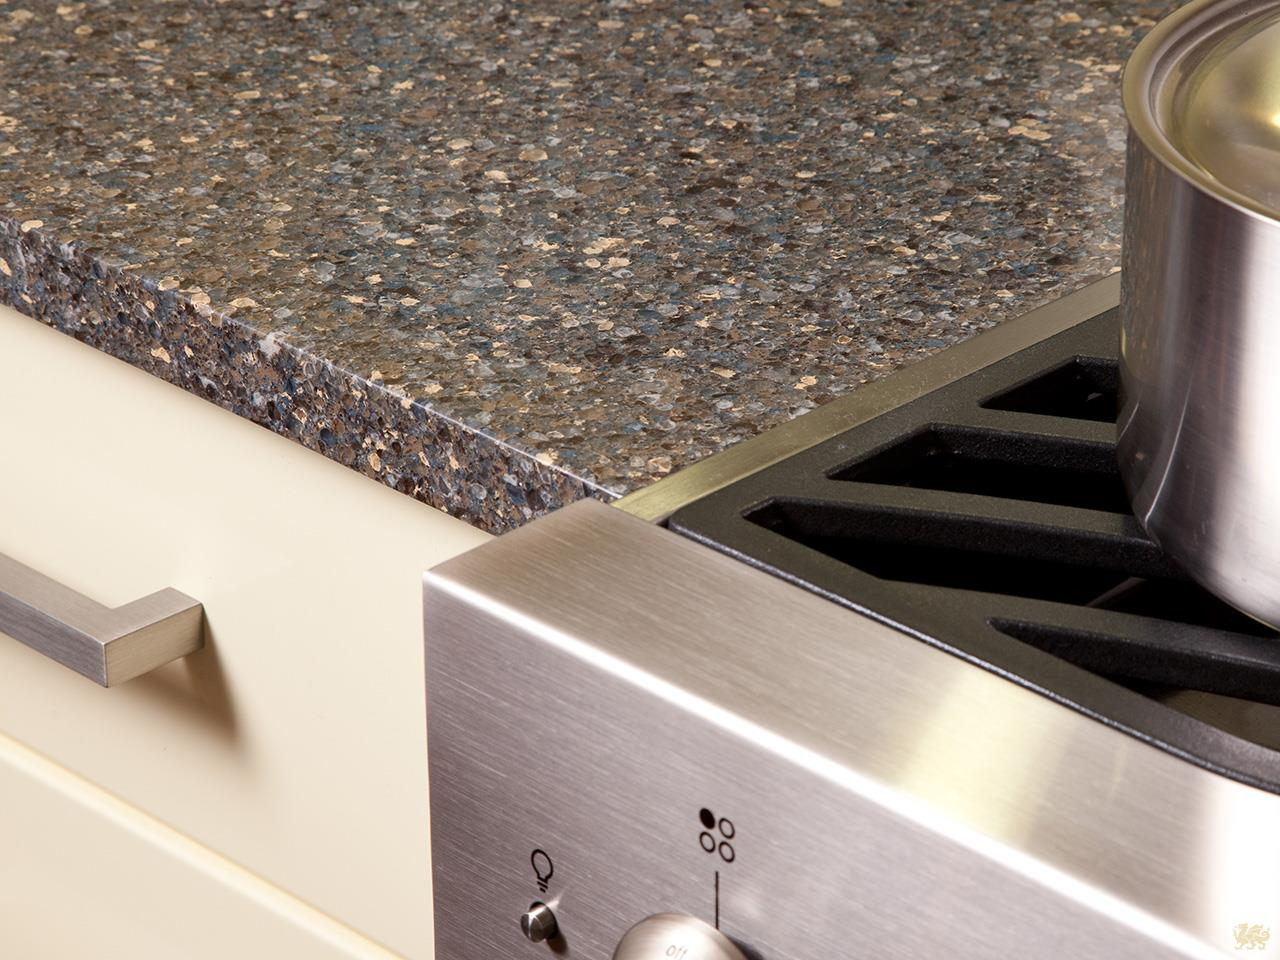 Cleaning Formica Countertops 3 Ways To Keep Your Countertops Clean Floform Countertops